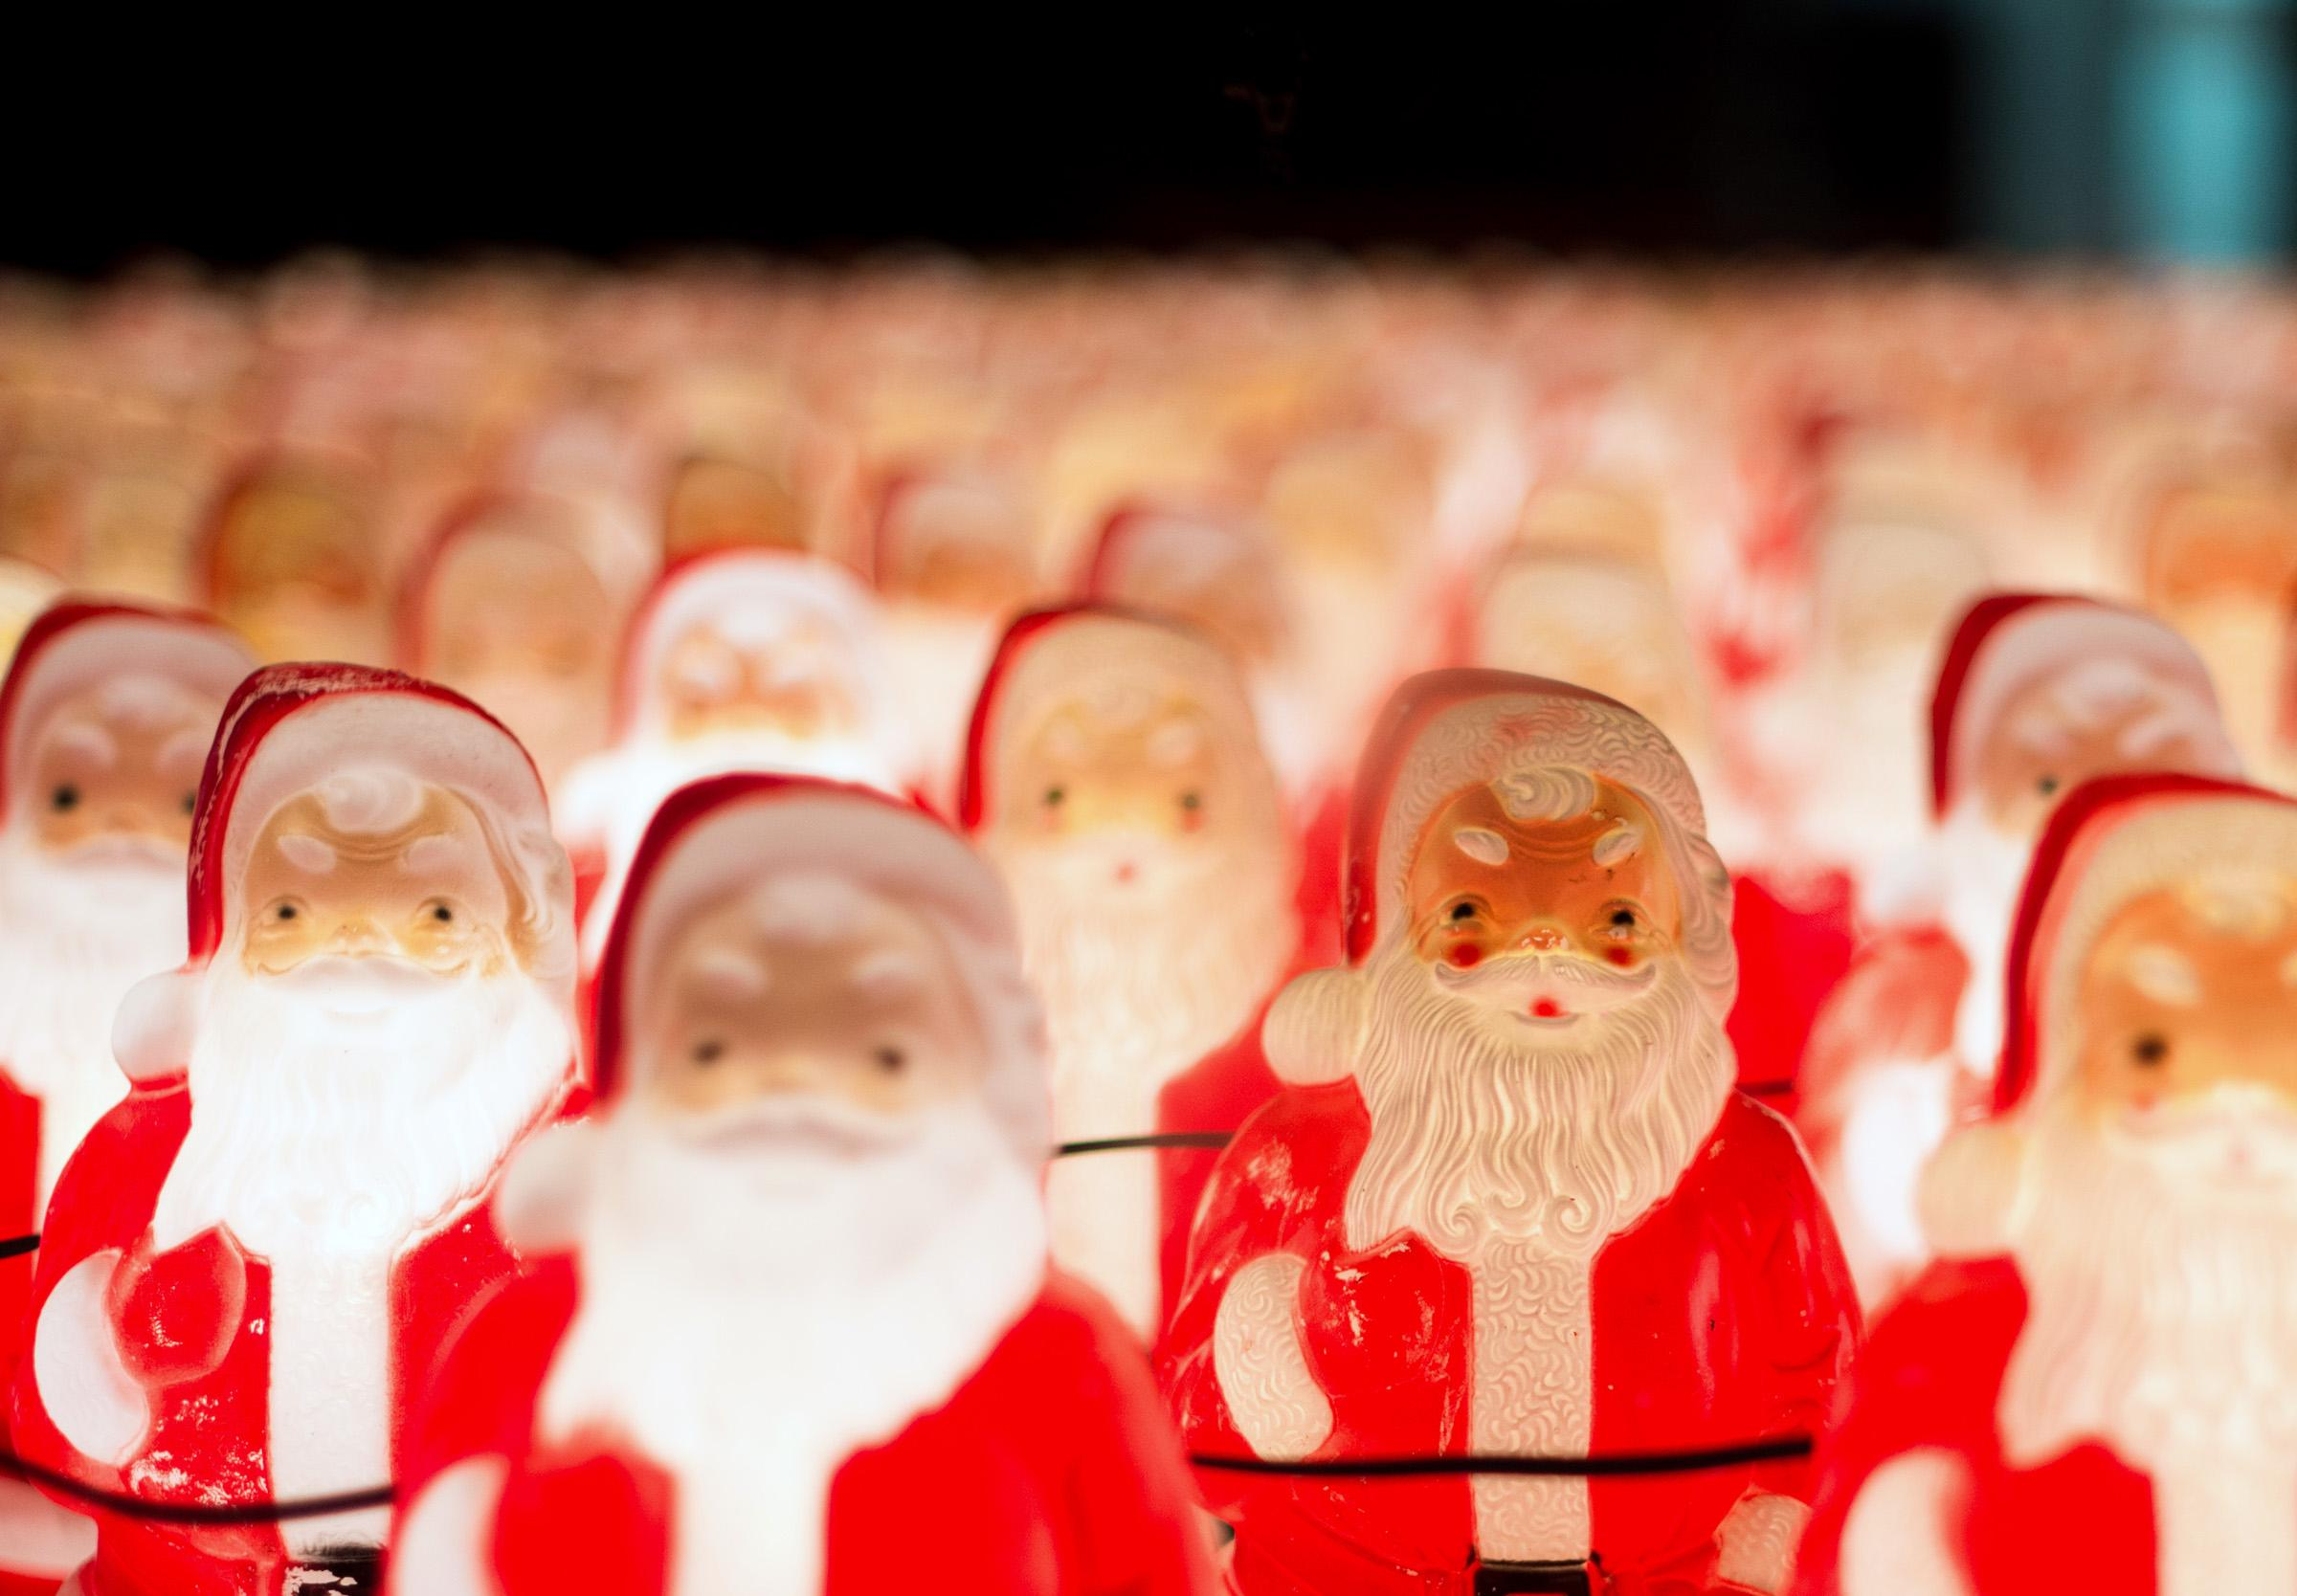 A local artist has hidden a display of 350 light-up Santas somewhere in Downtown Portland, and he's posting clues about its location on his Instagram account. Chris Willis has been collecting the 60's-vintage blow mold Santas since 2010 and each year he finds a location to set up the display. (Tristan Fortsch/KATU News on Dec. 12, 2017)